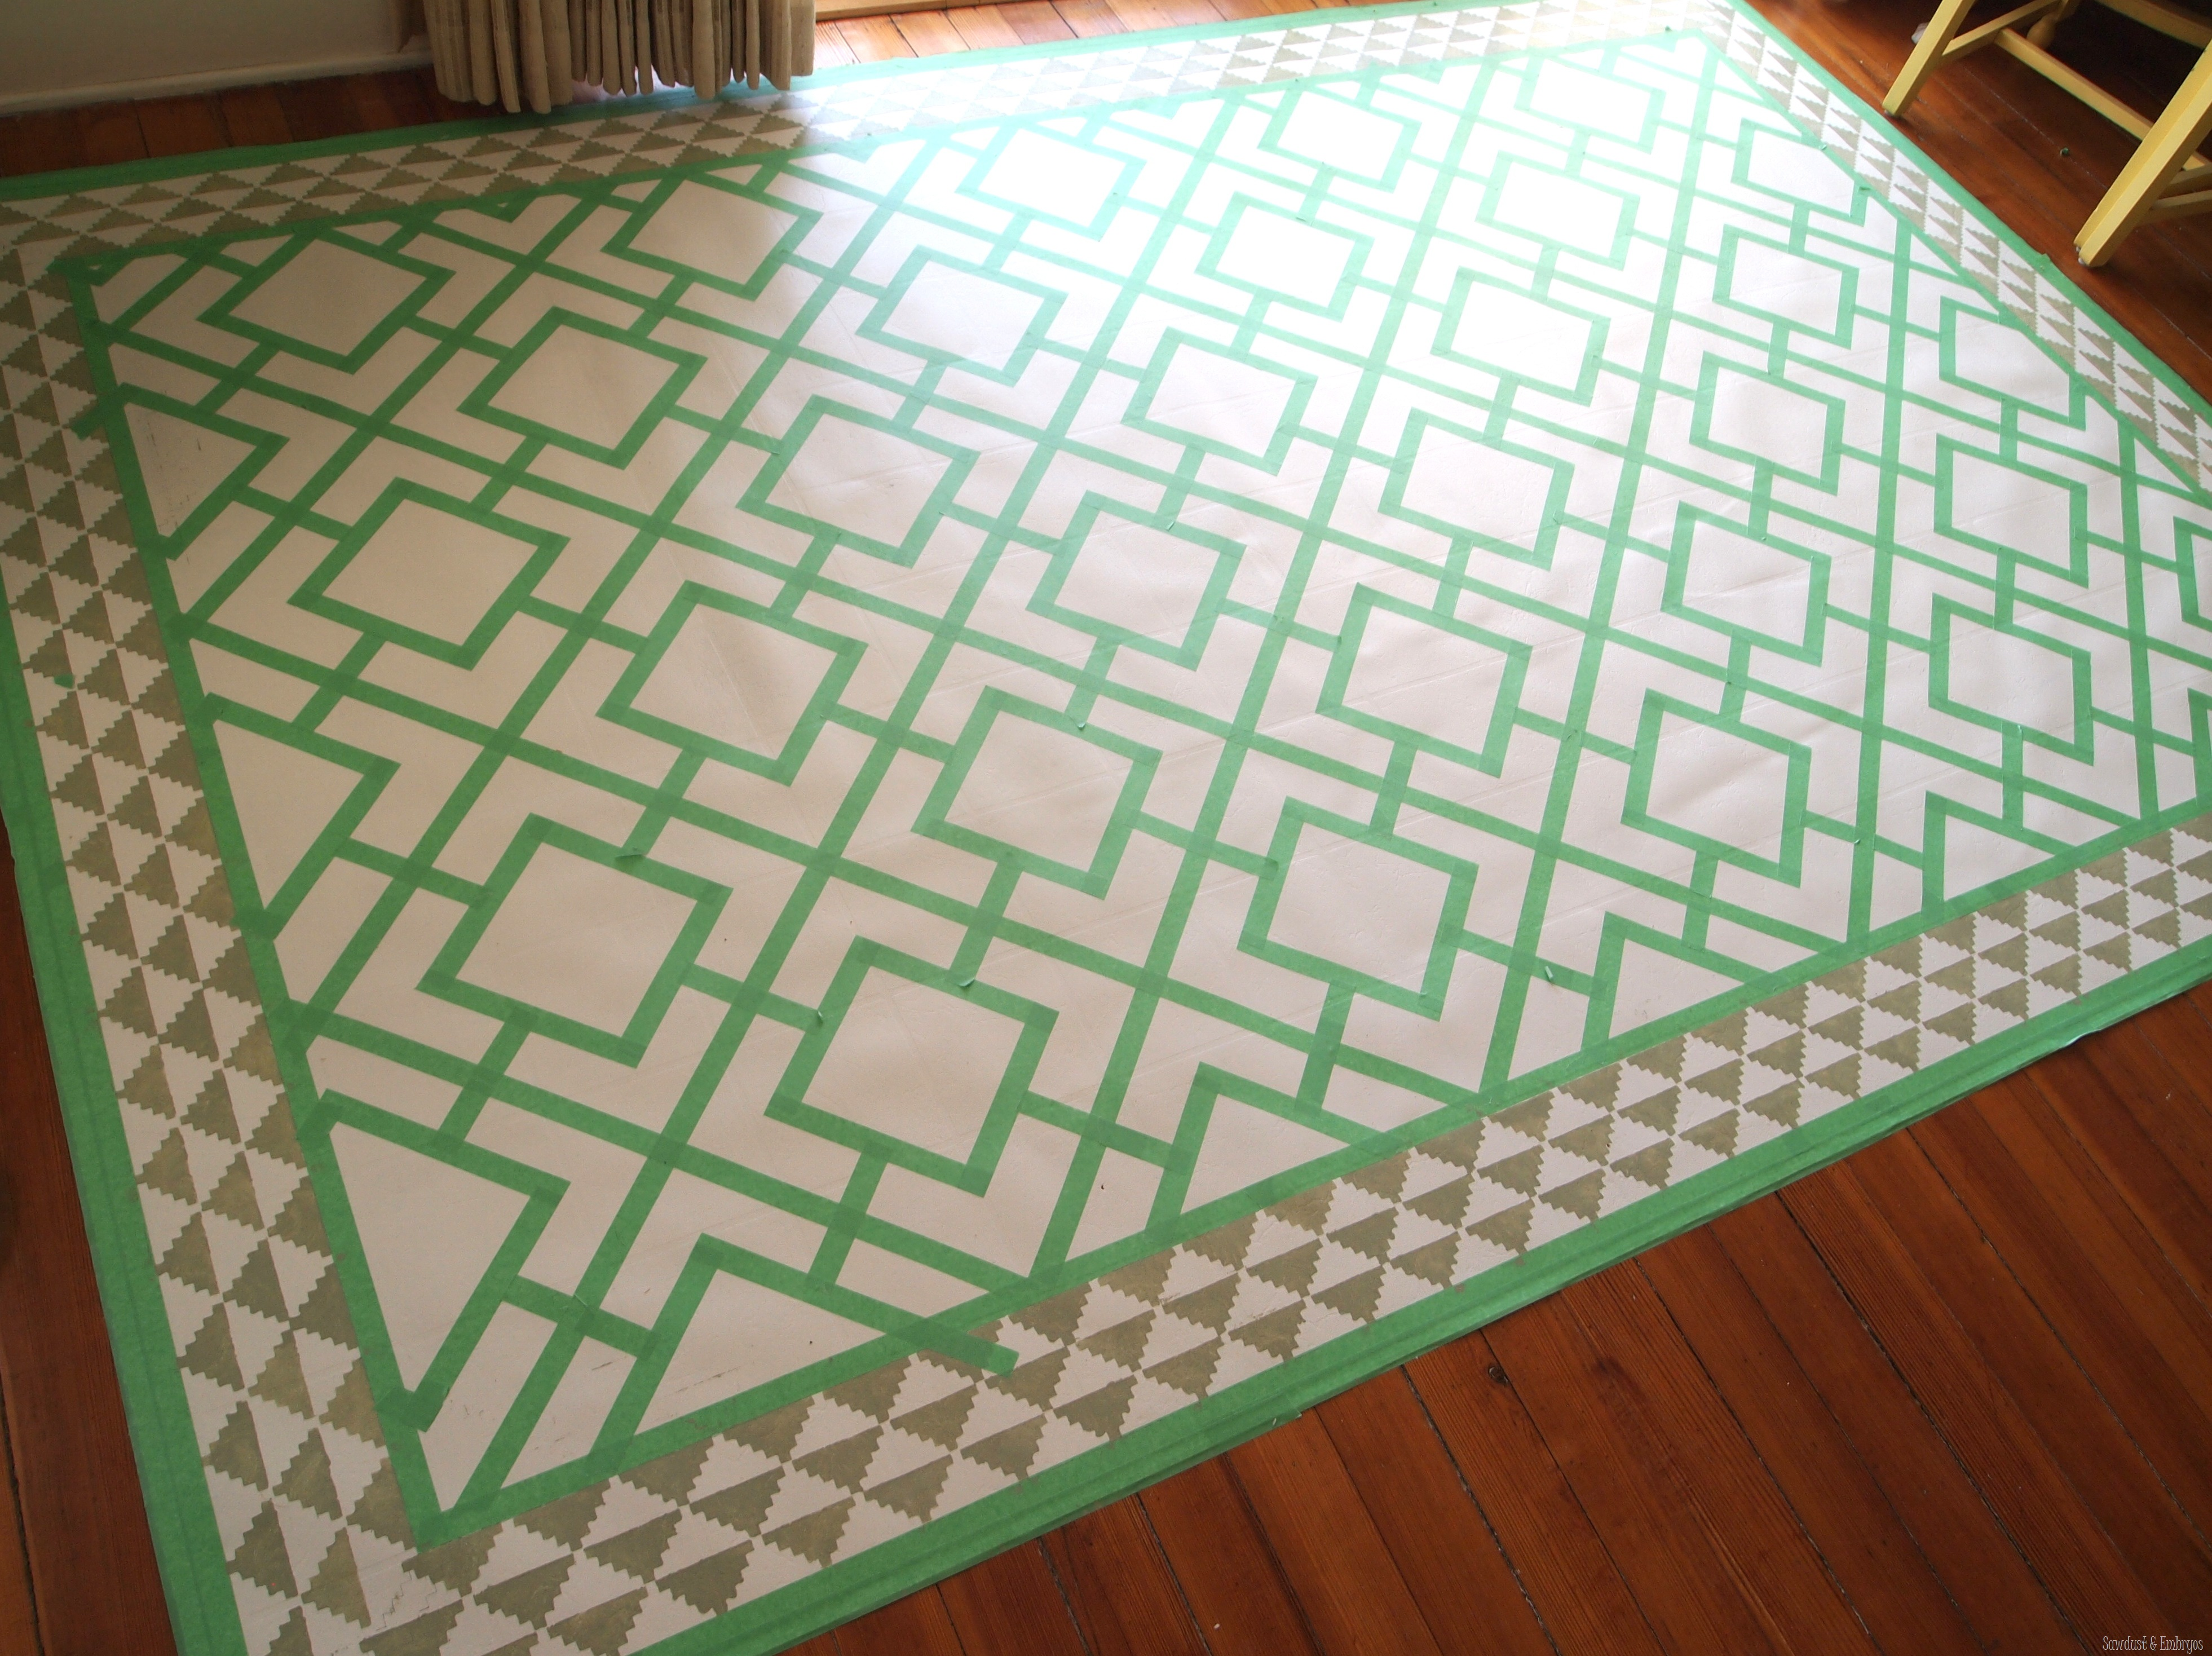 Paint A Remnant Of Linoleum To Look Like Legit Area Rug For Under Your Dining